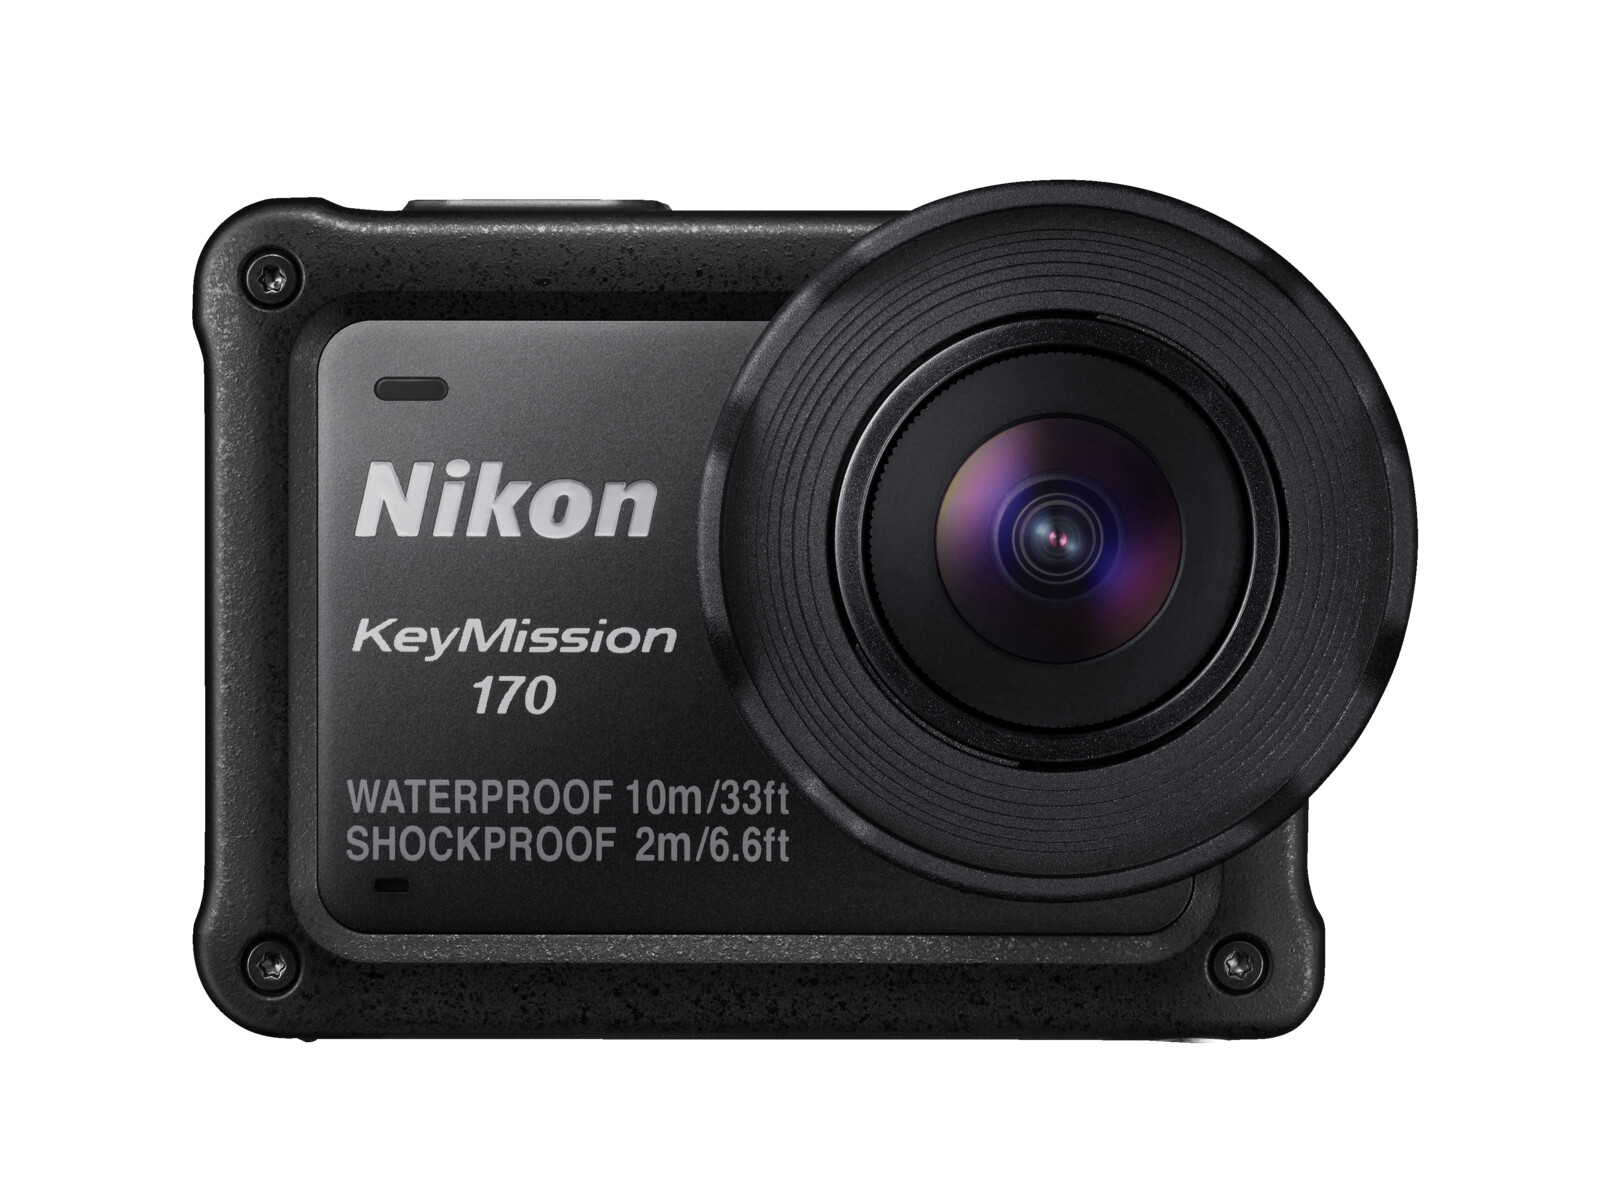 nikon keymission170 action cam bildstabilisator wlan. Black Bedroom Furniture Sets. Home Design Ideas